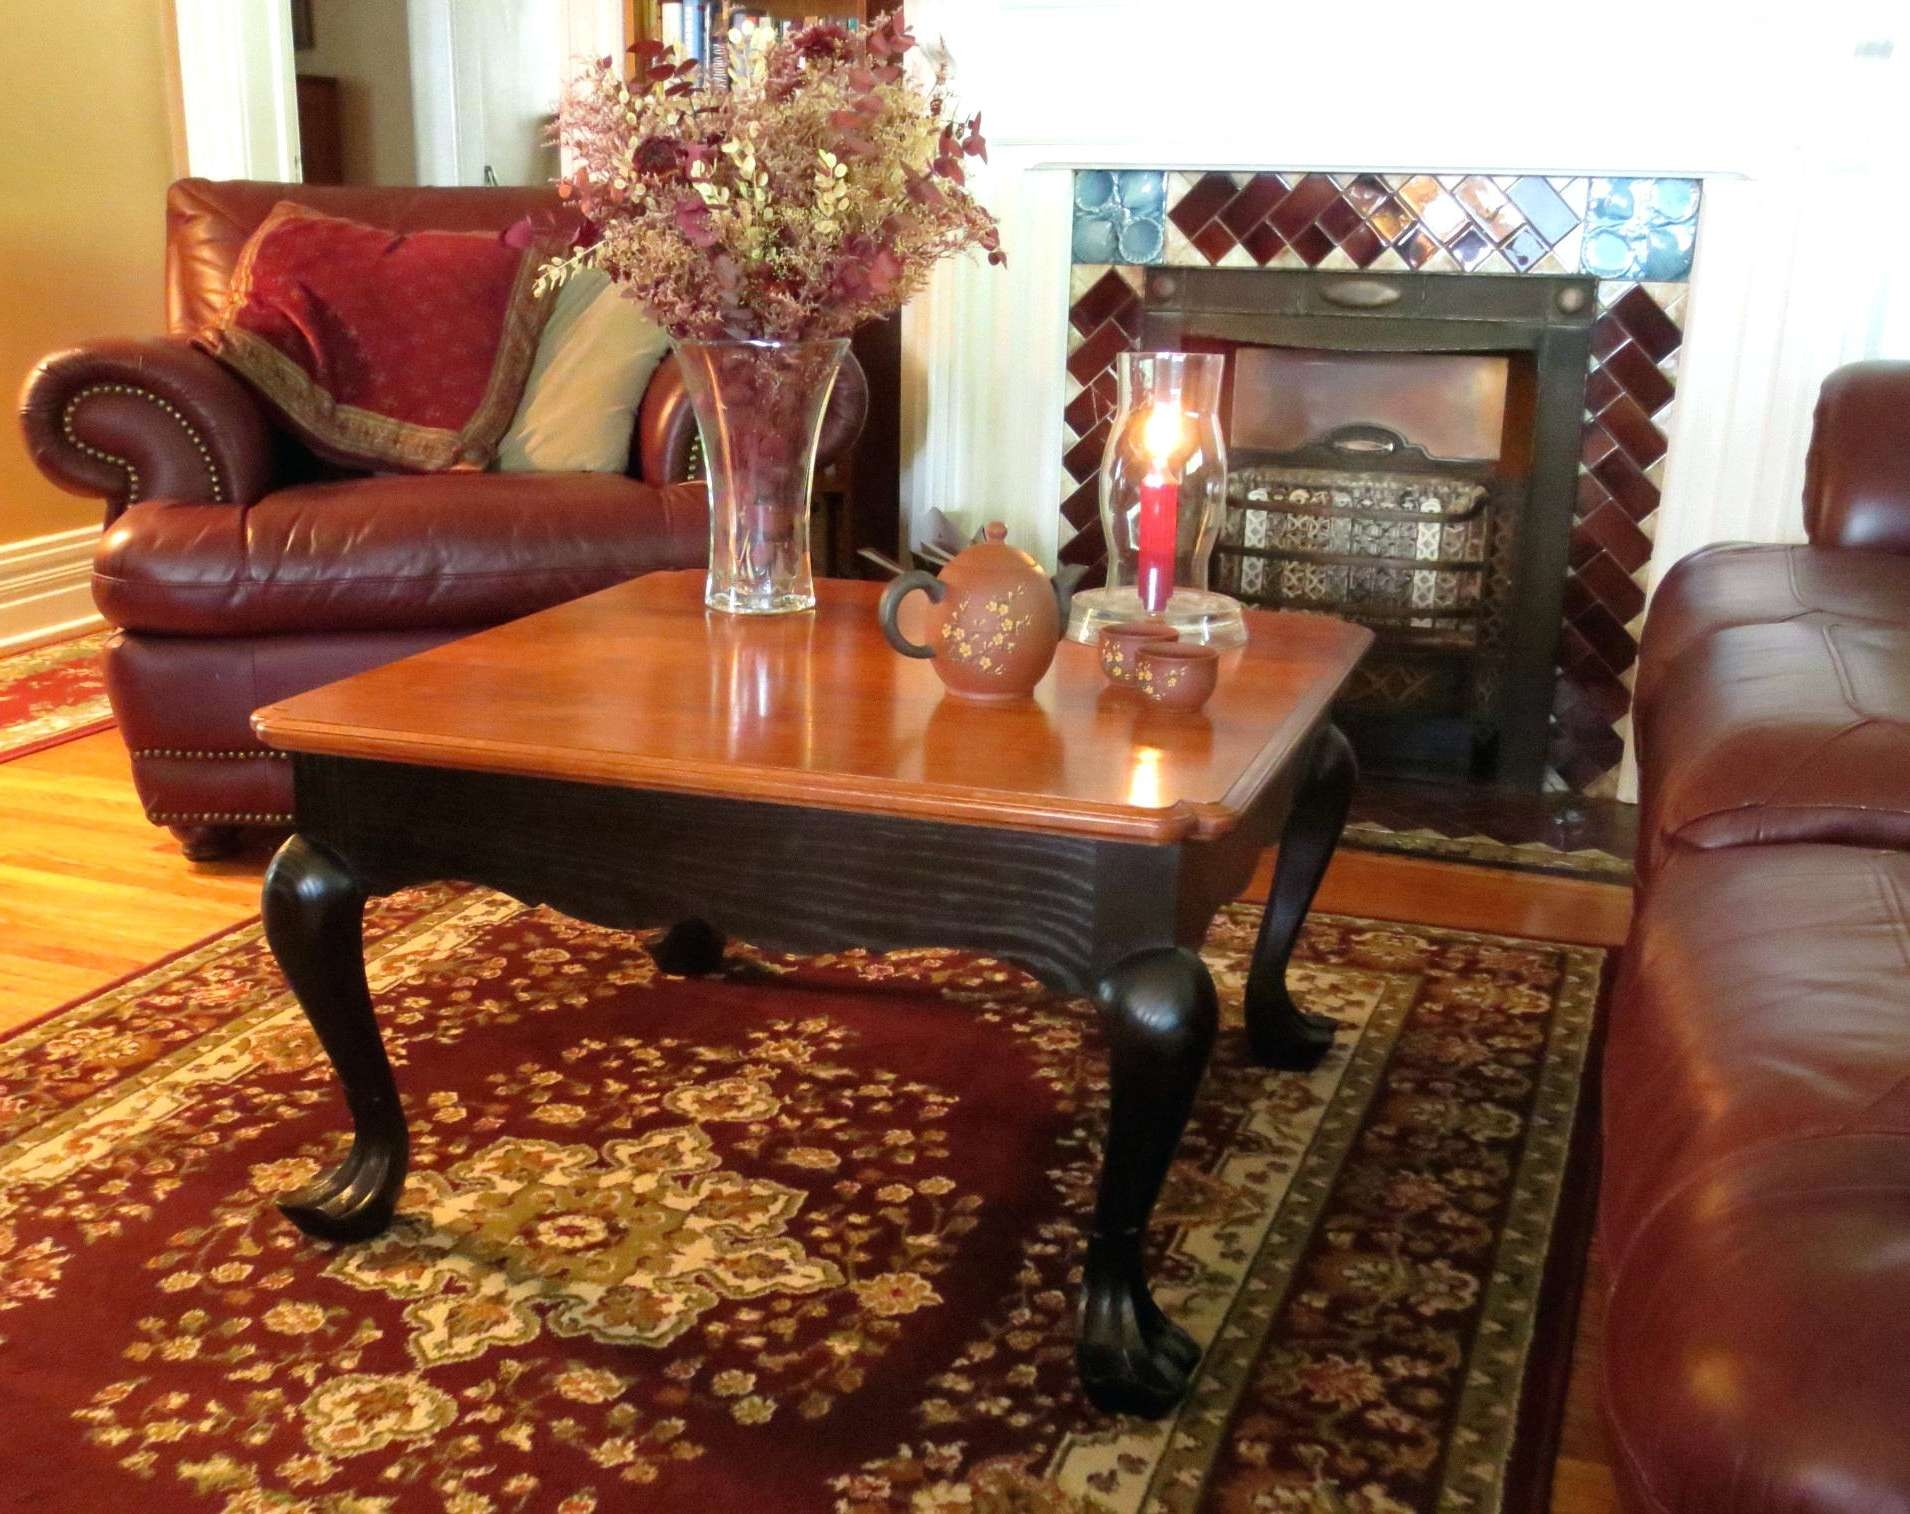 Displaying Gallery of Baby Proof Coffee Tables Corners View 13 of